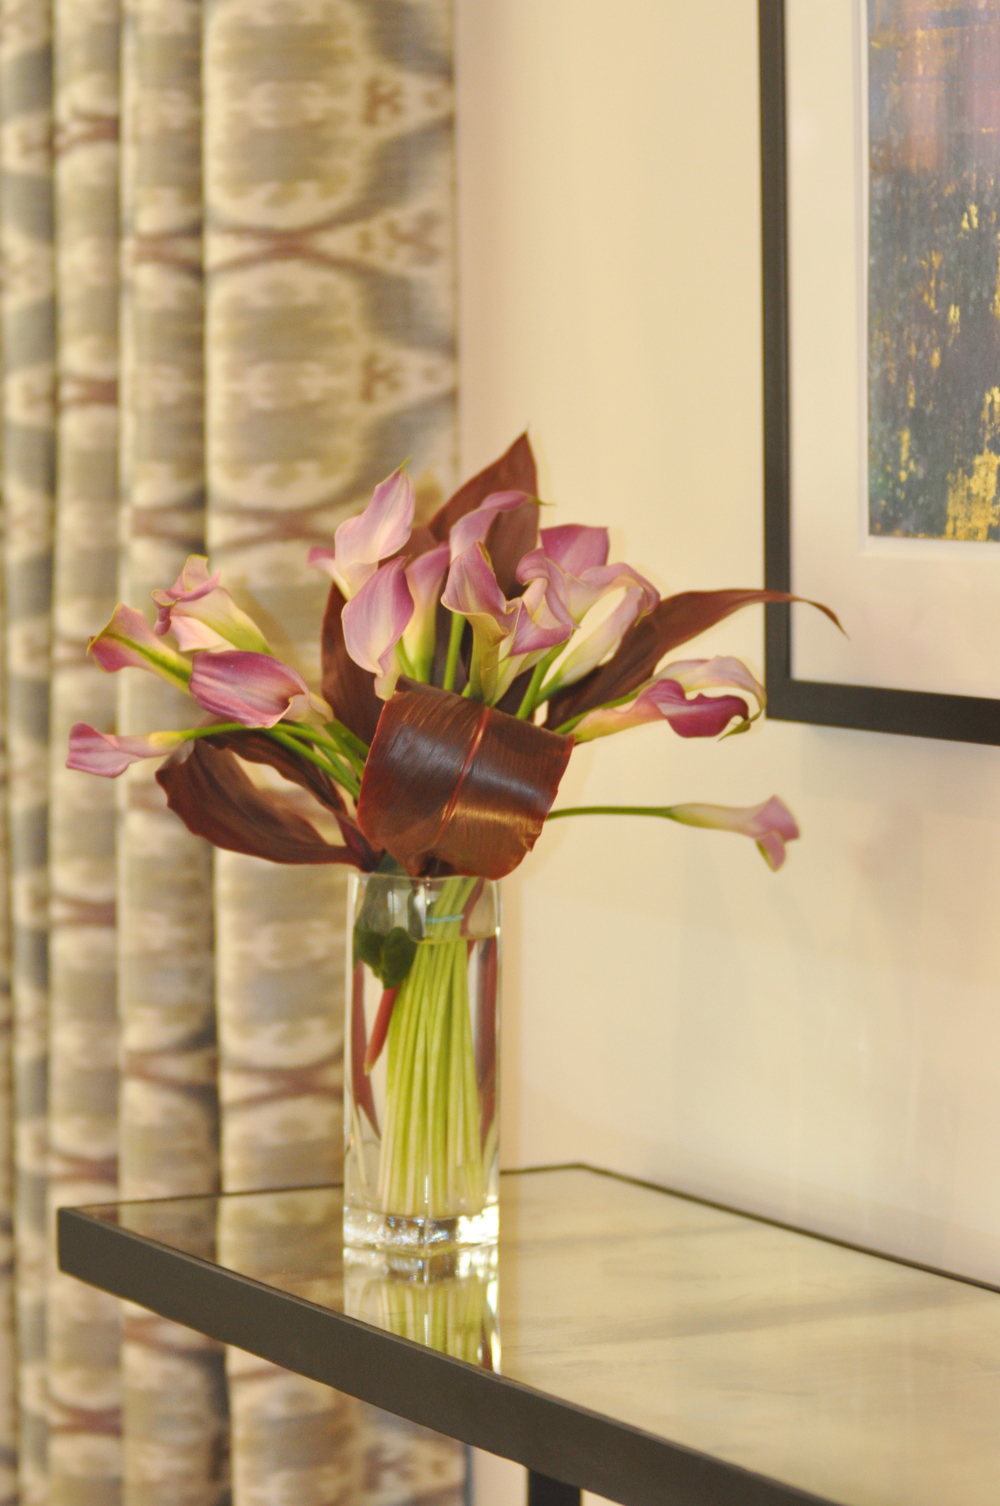 KAM DESIGN LLC_Living Room_Living Room Color Schemes_Living Room Art_Flower Arrangement - 2.jpg